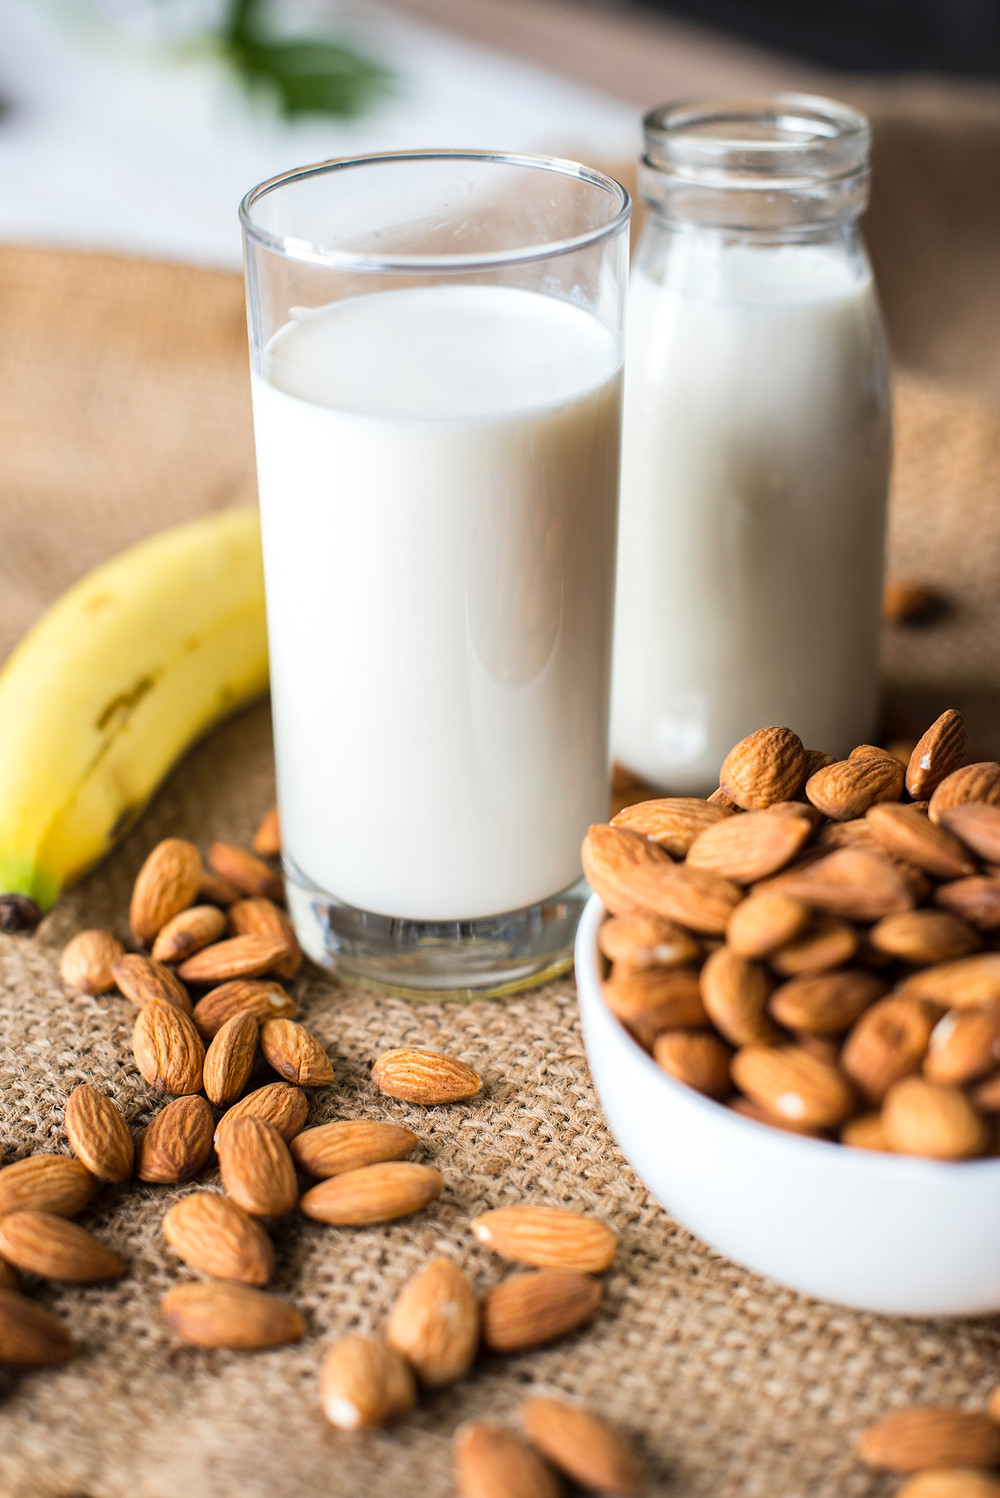 Two glasses of milk with almonds and a banana.